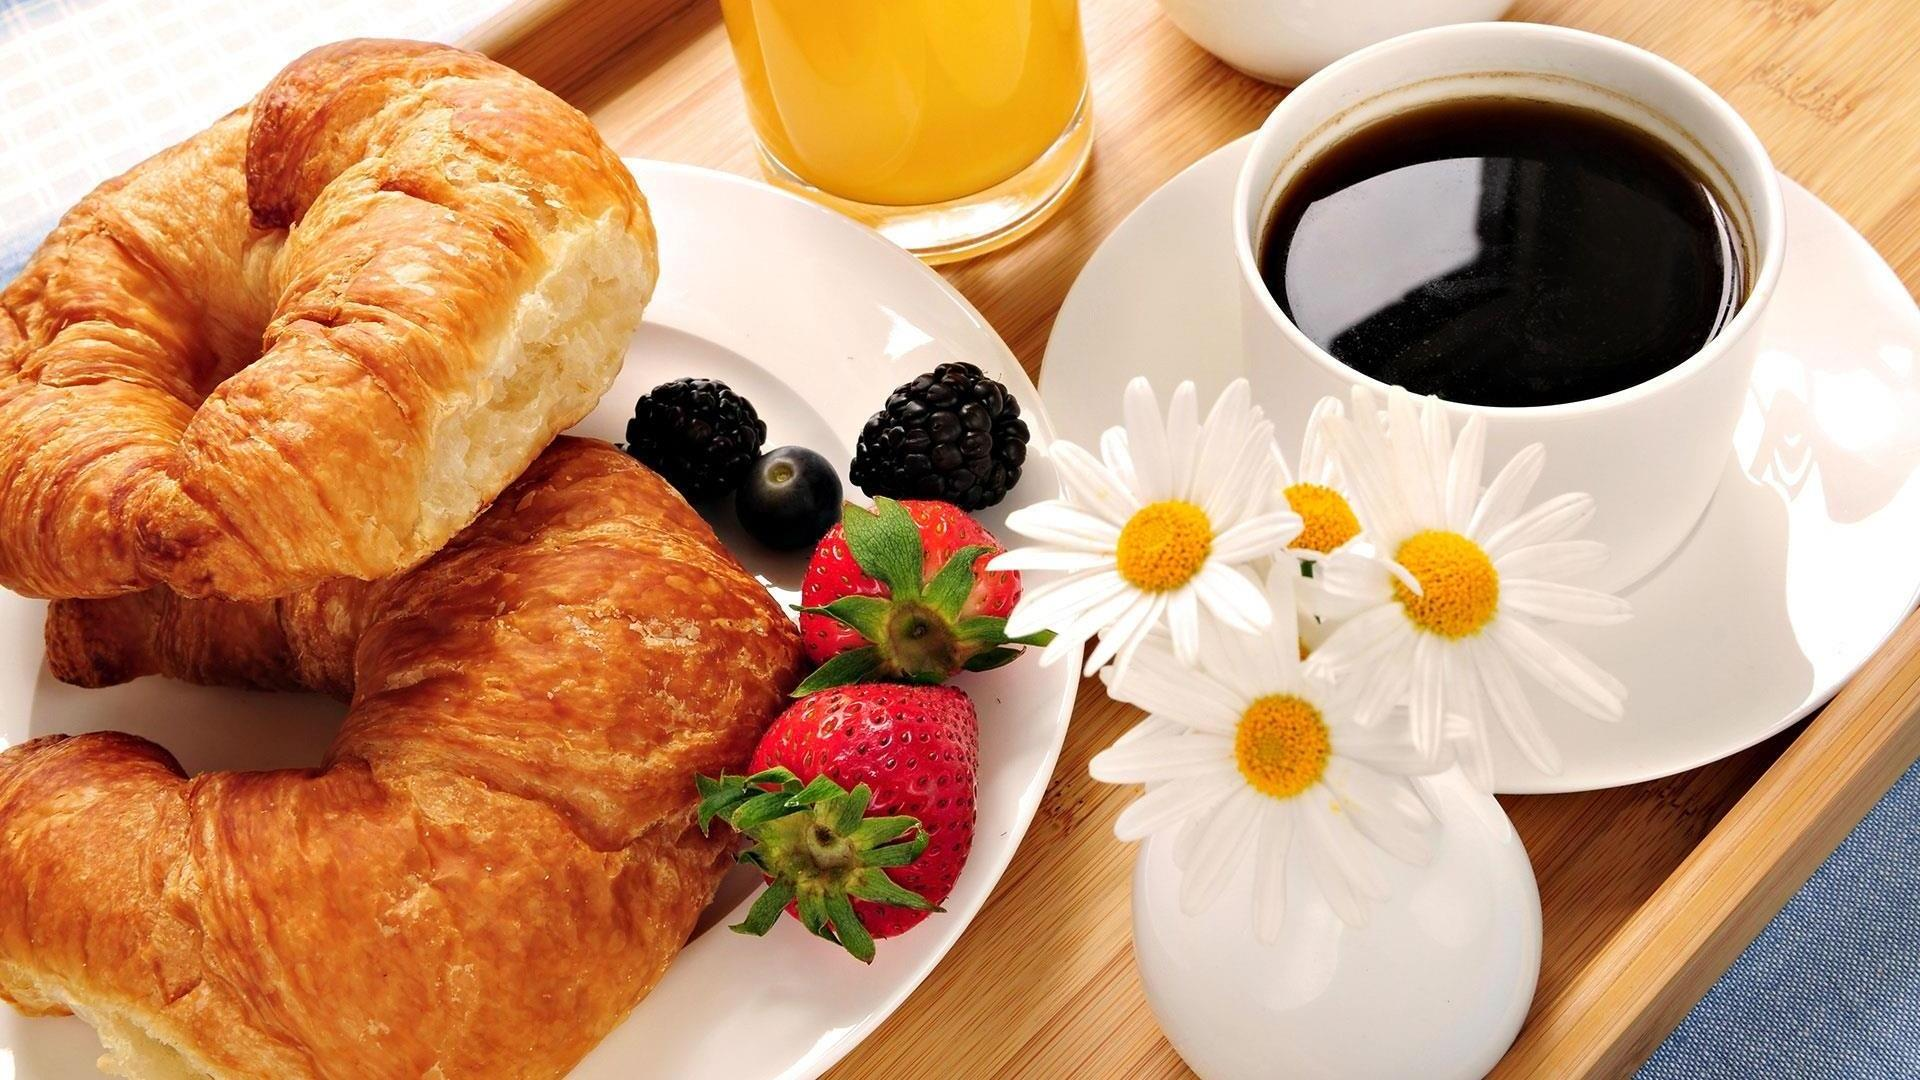 Breakfast Live Hd Wallpapers For Android Apk Download